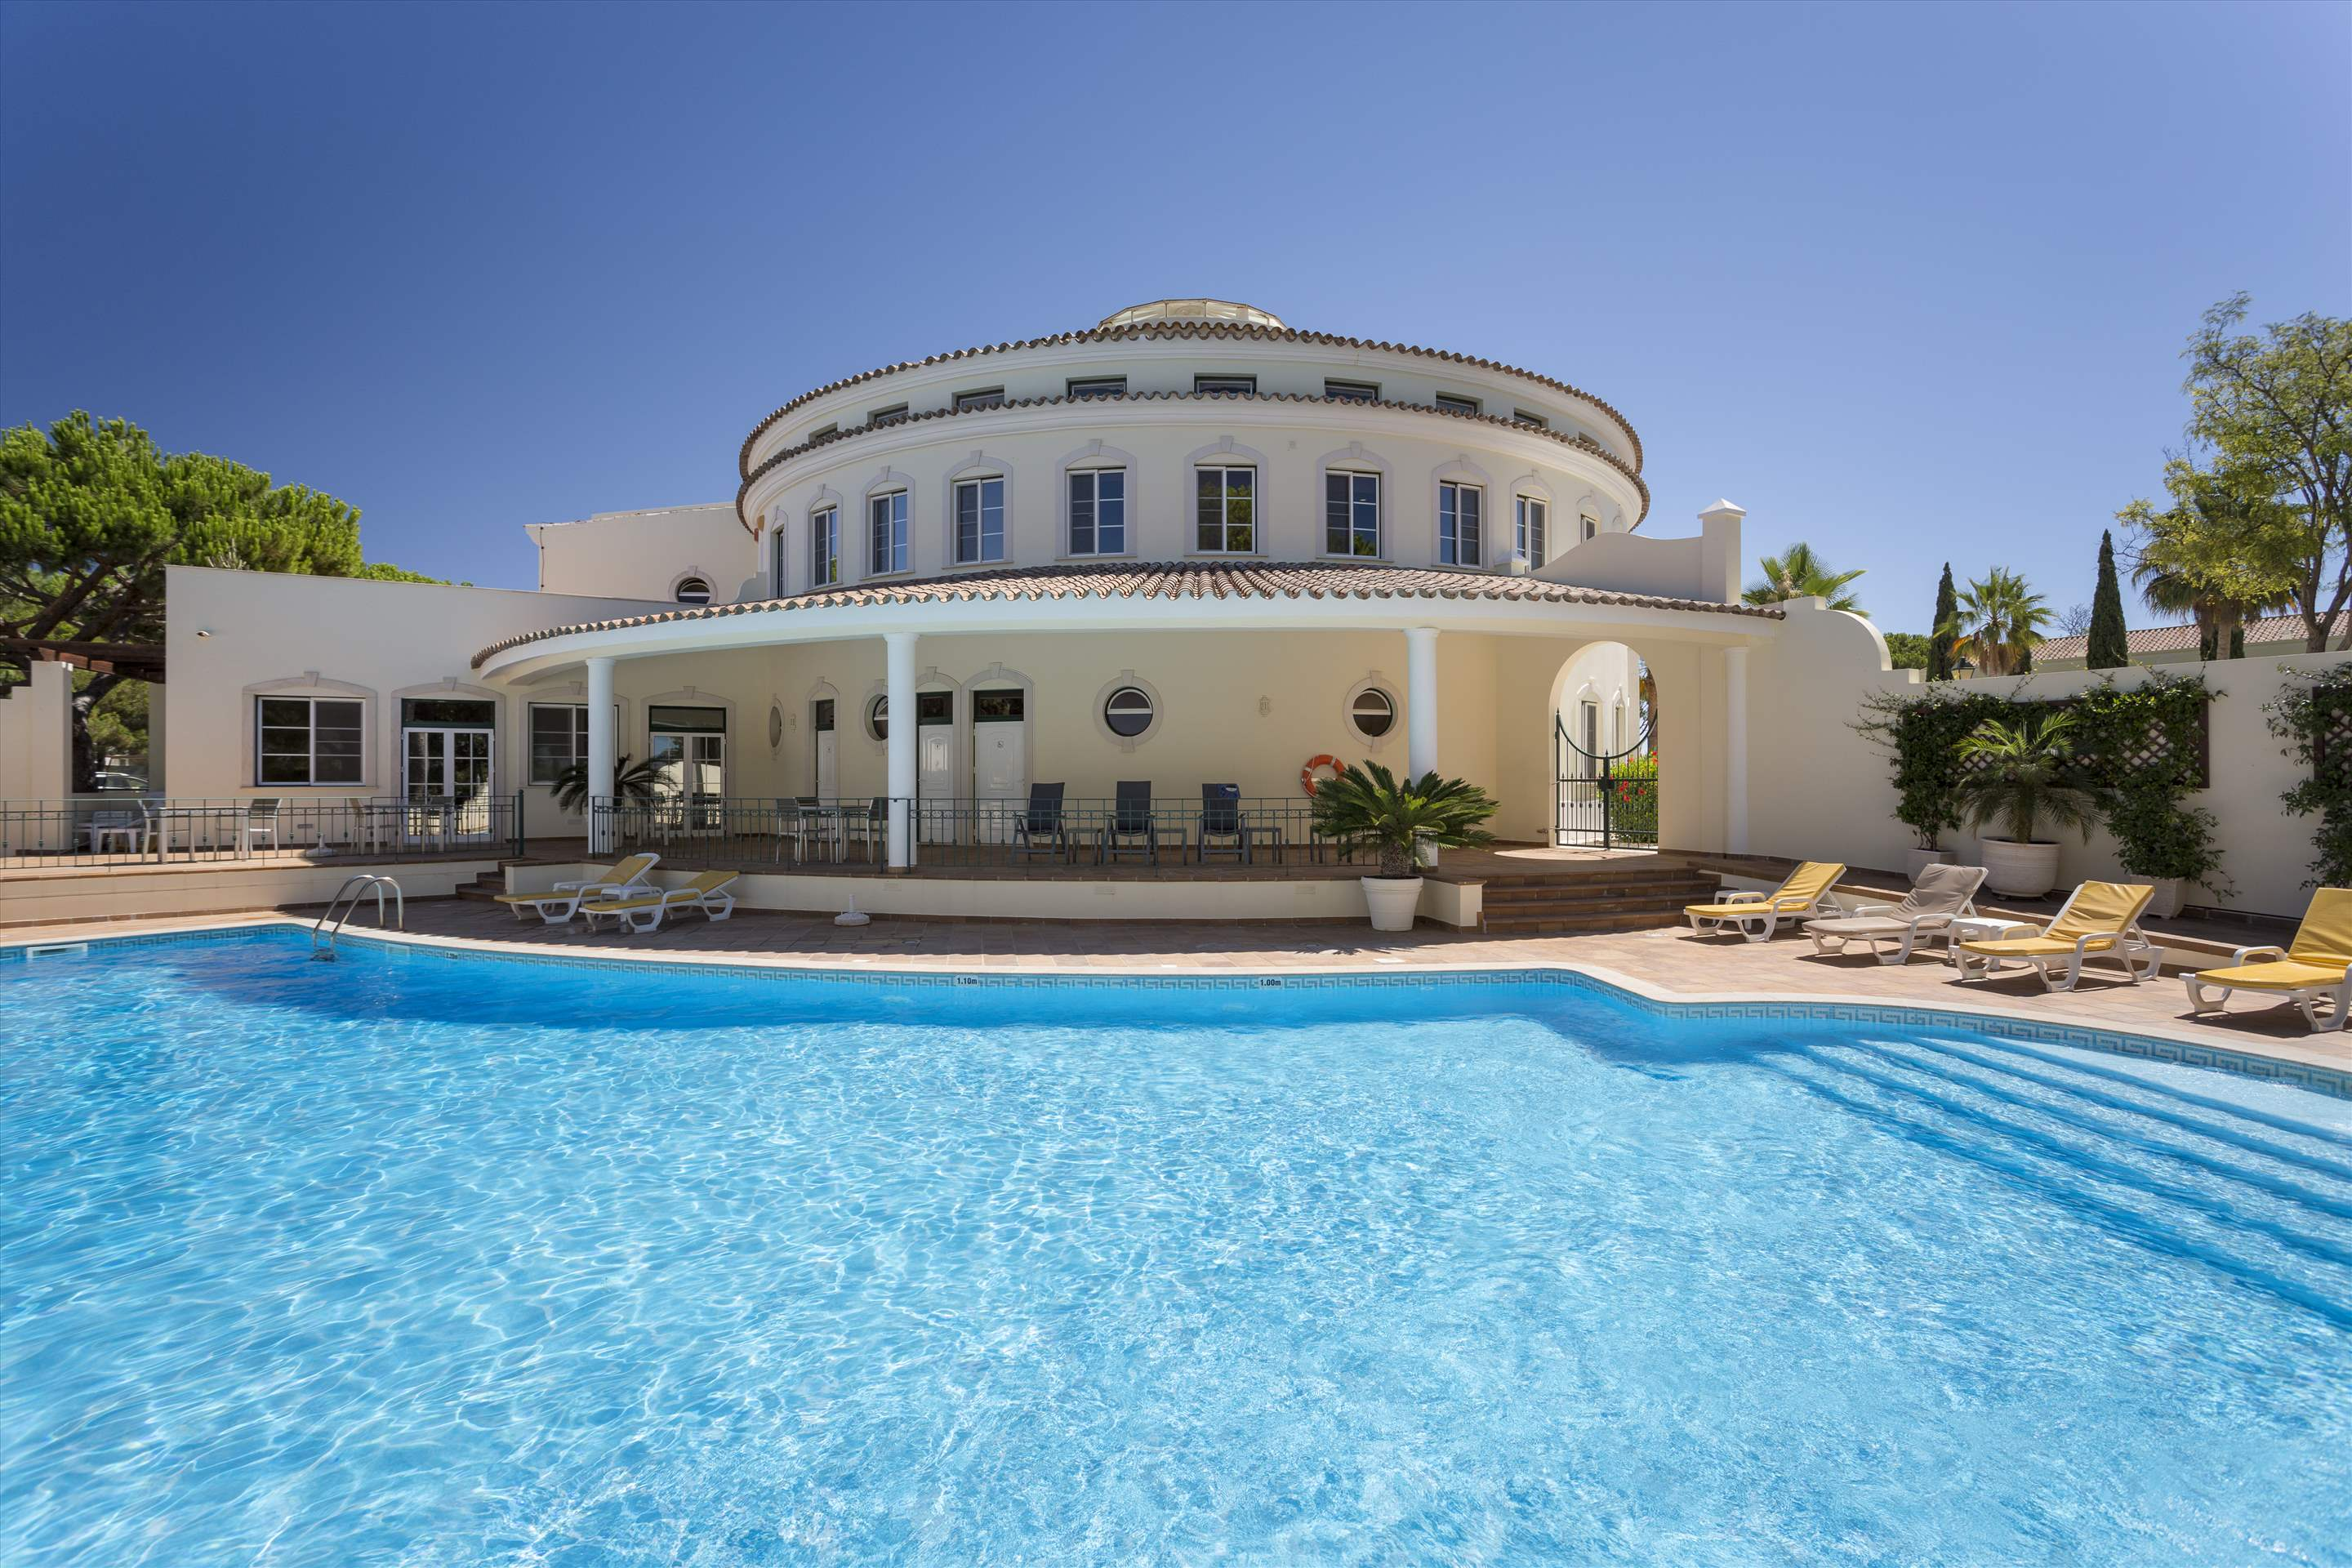 Townhouse Jessica, 3 bedroom villa in Quinta do Lago, Algarve Photo #4